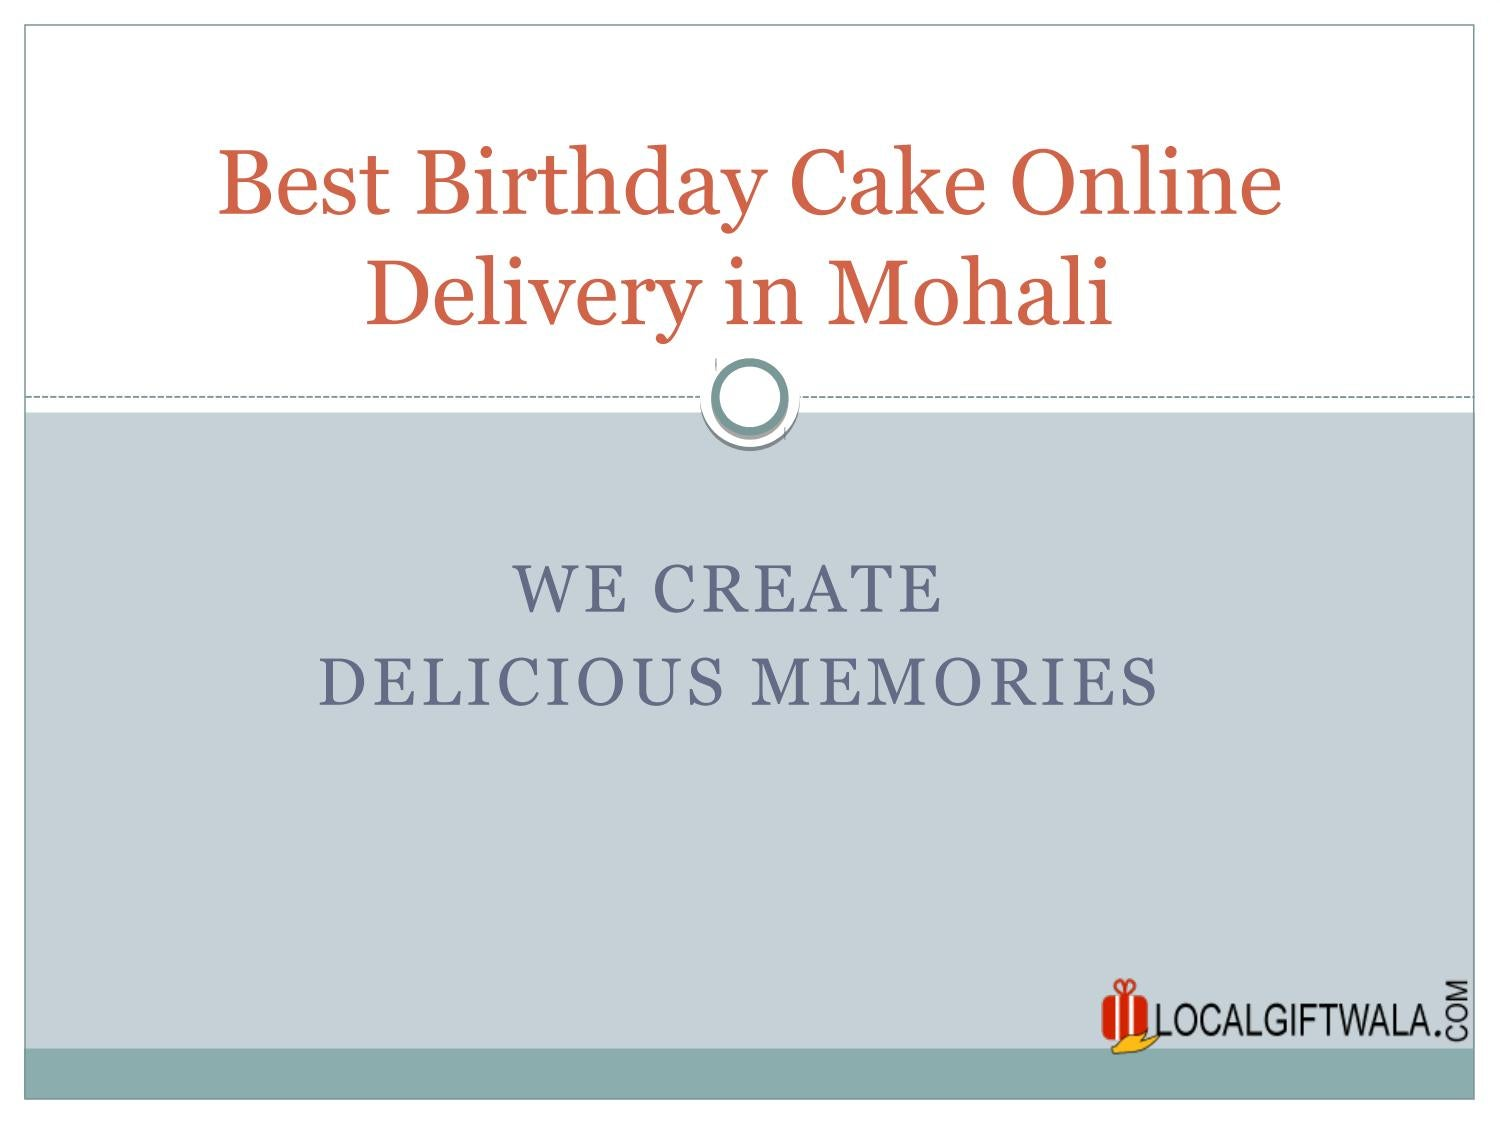 Surprising Best Birthday Cake Online Delivery In Mohali By Local Twala Issuu Personalised Birthday Cards Paralily Jamesorg